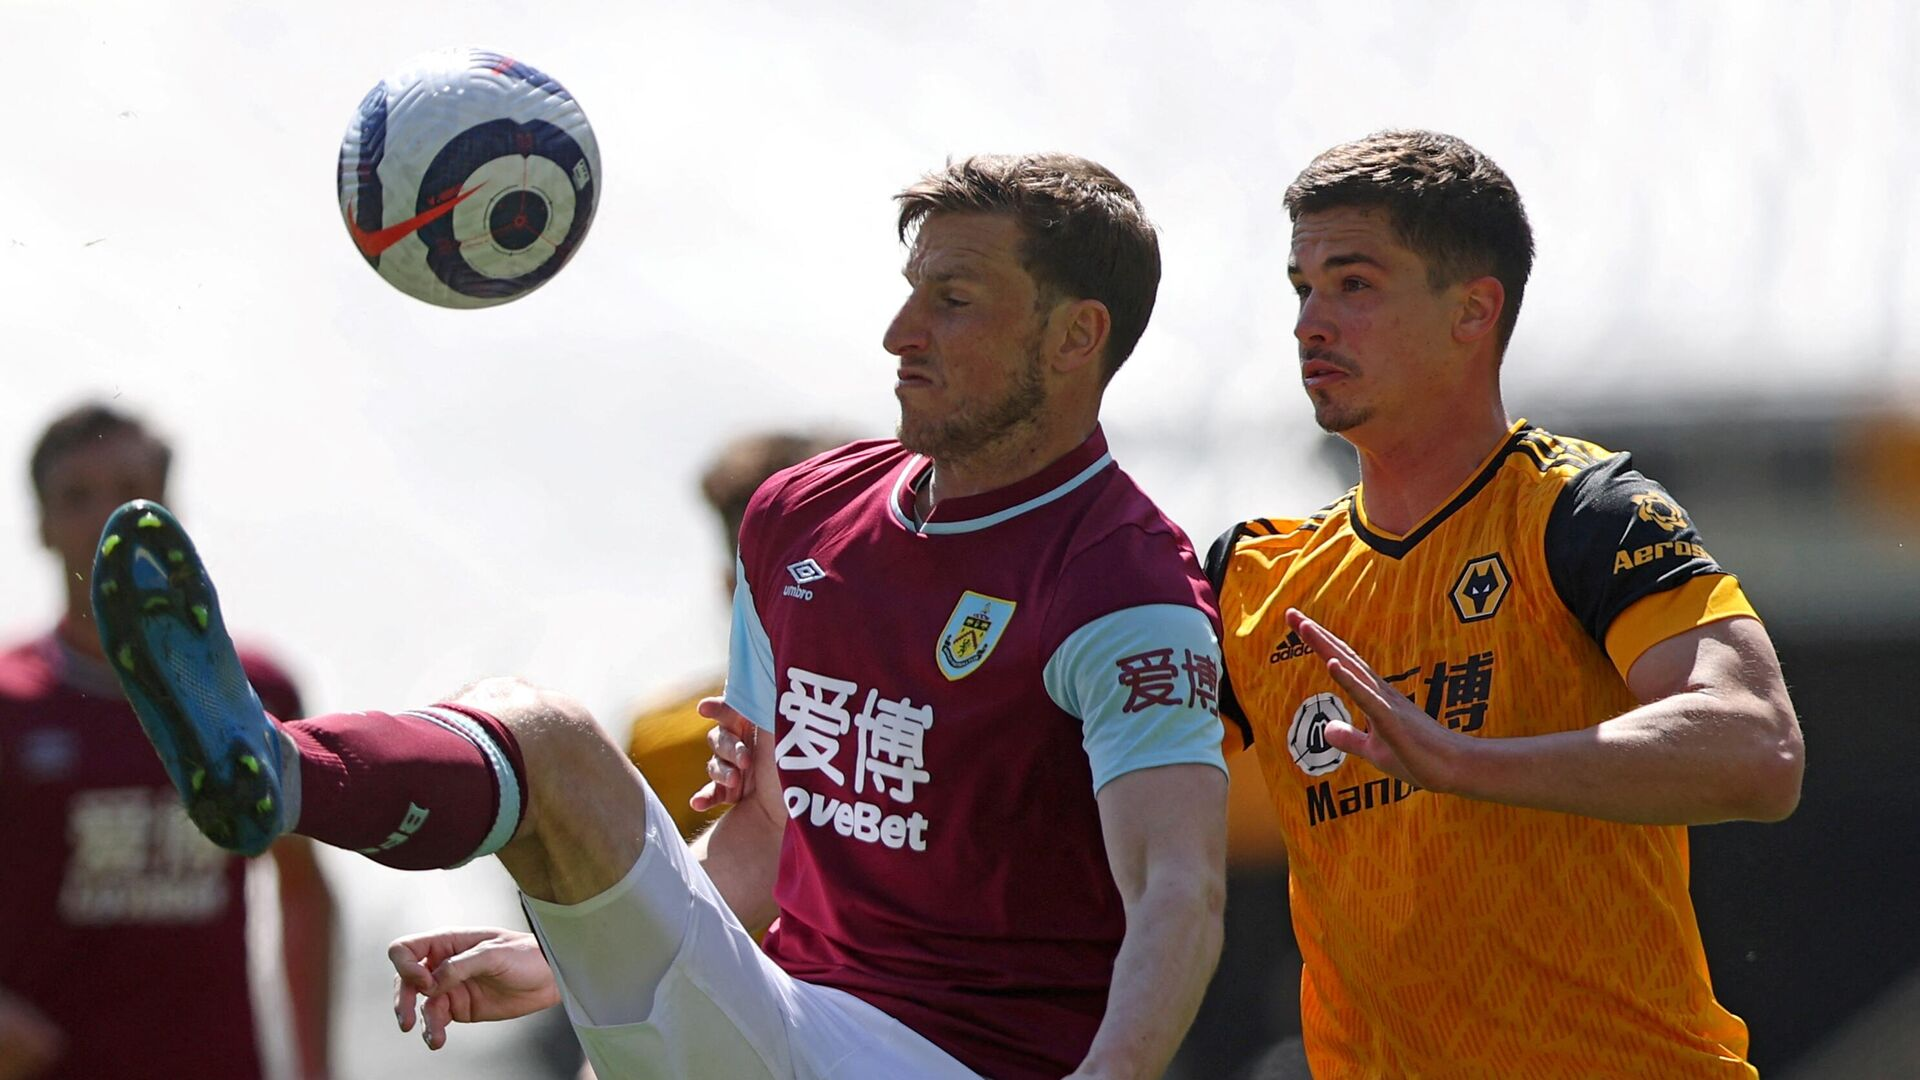 Burnley's New Zealand striker Chris Wood (L) vies with Wolverhampton Wanderers' Brazilian striker Willian Josйduring the English Premier League football match between Wolverhampton Wanderers and Burnley at the Molineux stadium in Wolverhampton, central England on April 25, 2021. (Photo by MOLLY DARLINGTON / POOL / AFP) / RESTRICTED TO EDITORIAL USE. No use with unauthorized audio, video, data, fixture lists, club/league logos or 'live' services. Online in-match use limited to 120 images. An additional 40 images may be used in extra time. No video emulation. Social media in-match use limited to 120 images. An additional 40 images may be used in extra time. No use in betting publications, games or single club/league/player publications. /  - РИА Новости, 1920, 25.04.2021